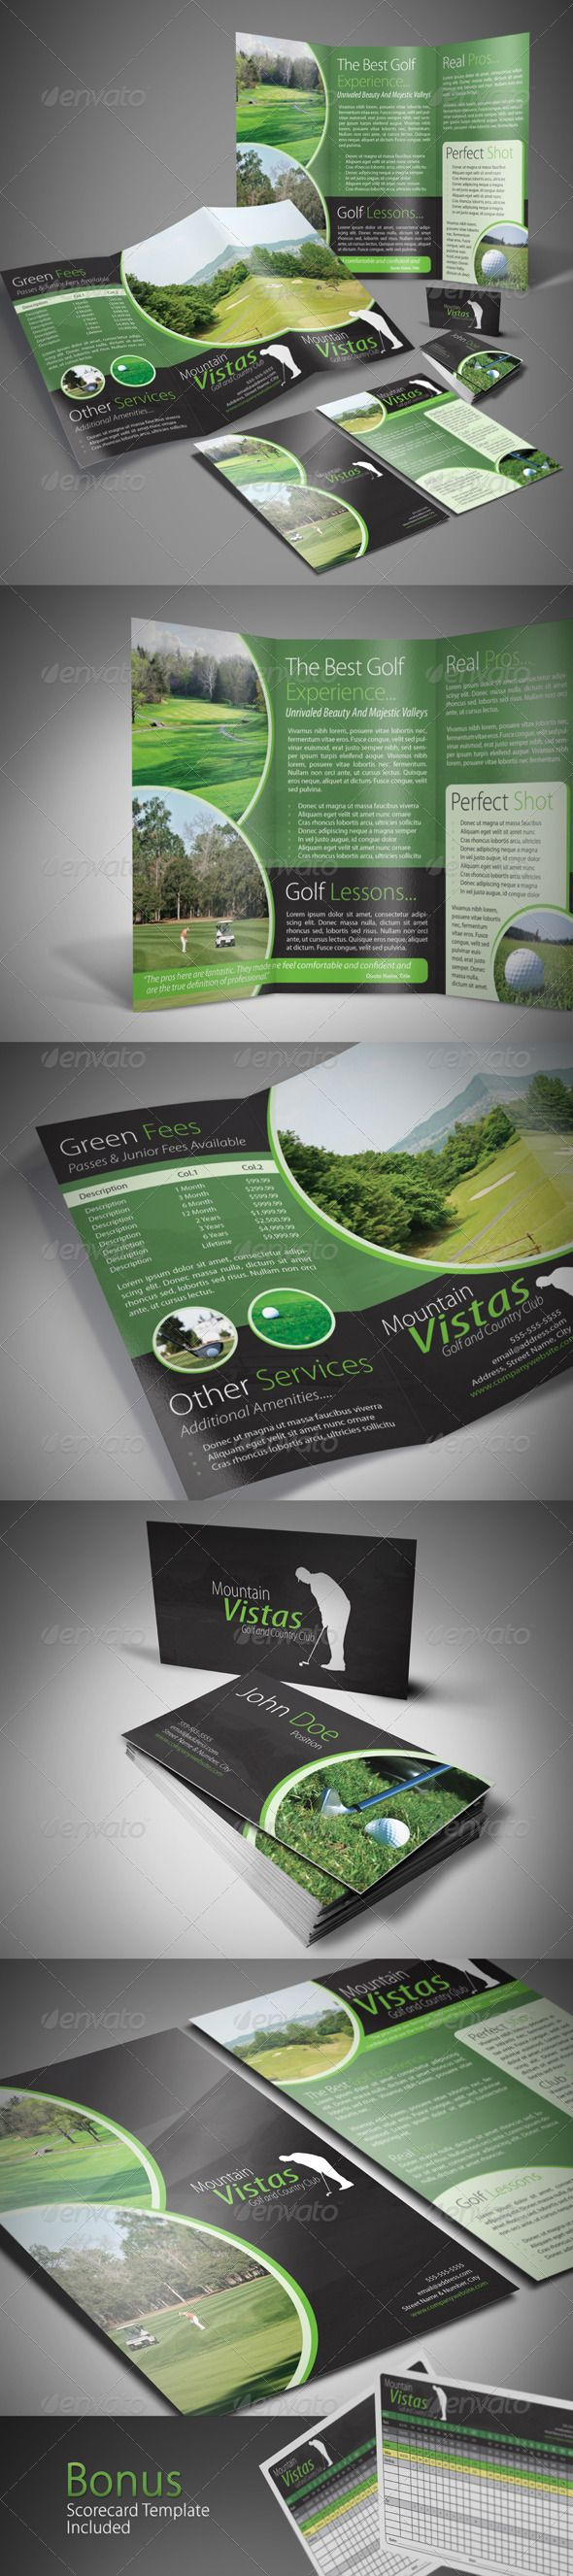 8 best Tri folds images on Pinterest | Brochures, Brochure template ...